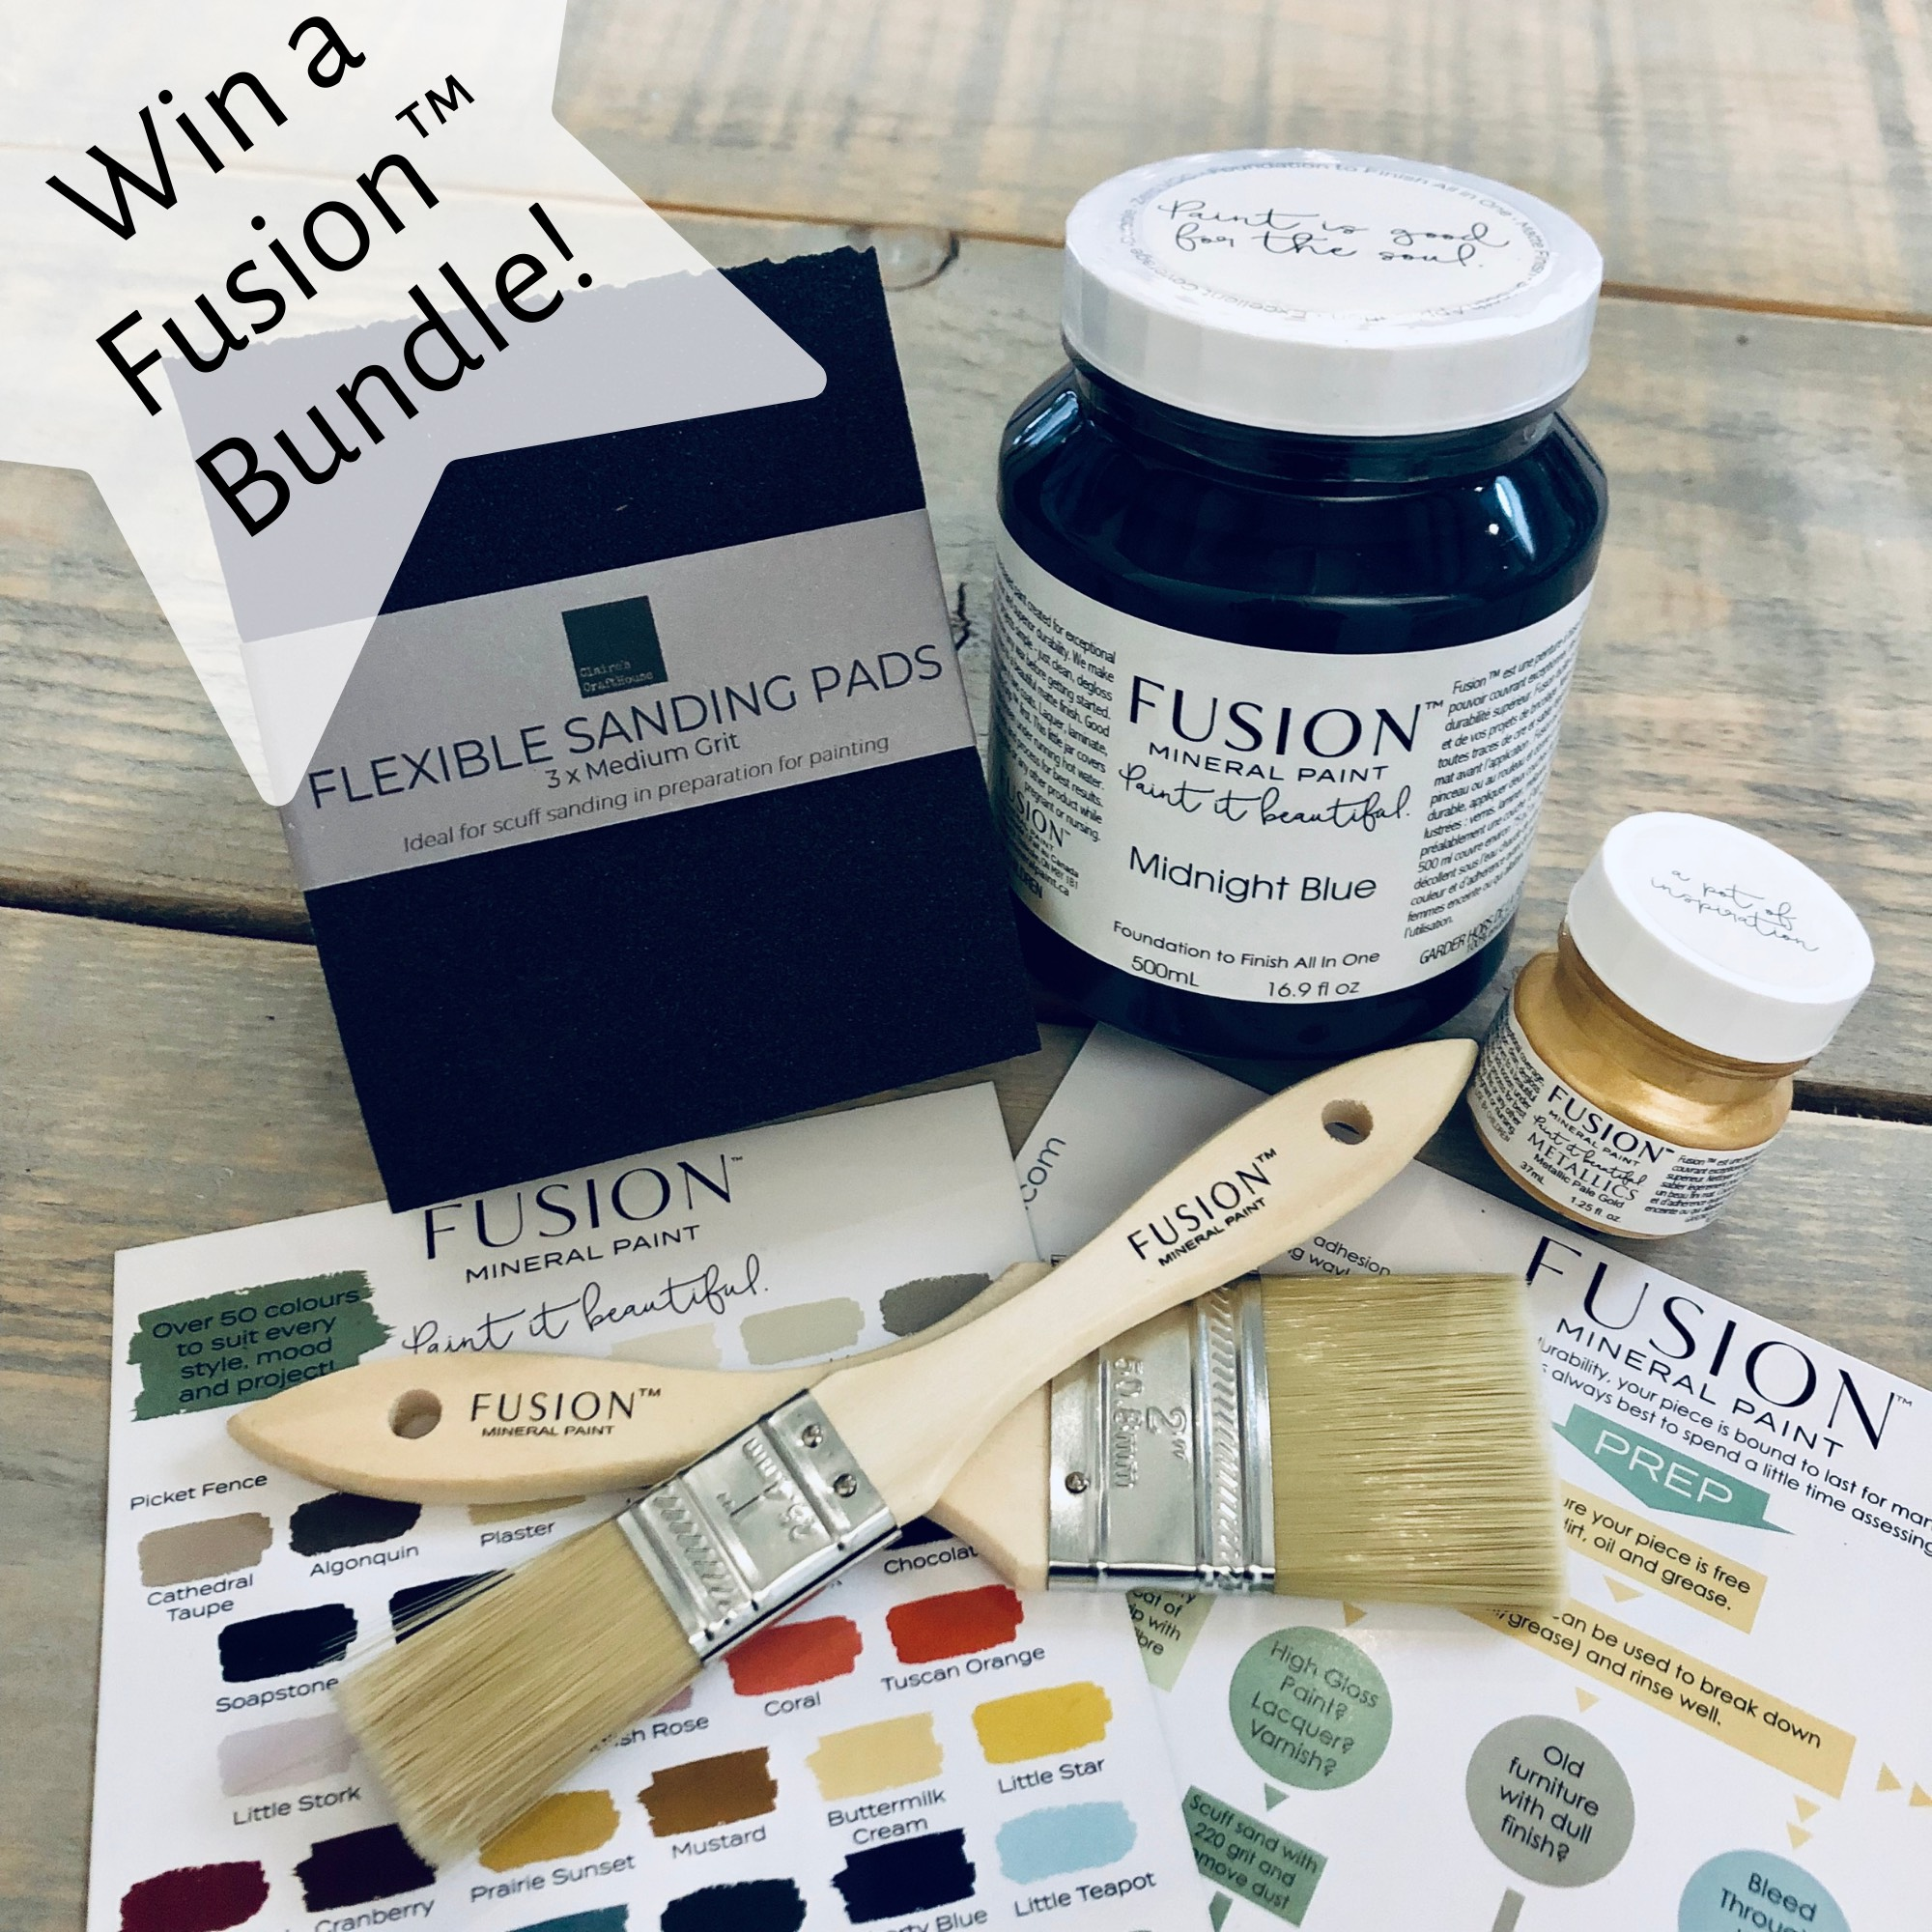 "Win a £40 Fusion Goodie Bundle. - As a thank you to all our fabulous customers, and to give others a chance to try Fusion, each month we're running a free prize draw. Everyone who has purchased from us during that month, either in-store or online, will automatically be entered into the draw for a chance to win a bundle of Fusion goodies worth over £40 RRP. You can also enter without a purchase if you would like to try Fusion for the first time.Monthly Prize Bundles Includes:- 500ml Pot of Fusion Mineral Paint (colour of your choice)- 37ml Metallic Tester Pot (colour of your choice)- 2"" Flat Fusion Brush- 1"" Flat Fusion Brush- Pack of 3 Flexible Sanding Pads- Fusion Colour & Prep GuideGood Luck!Terms & Conditions Apply."